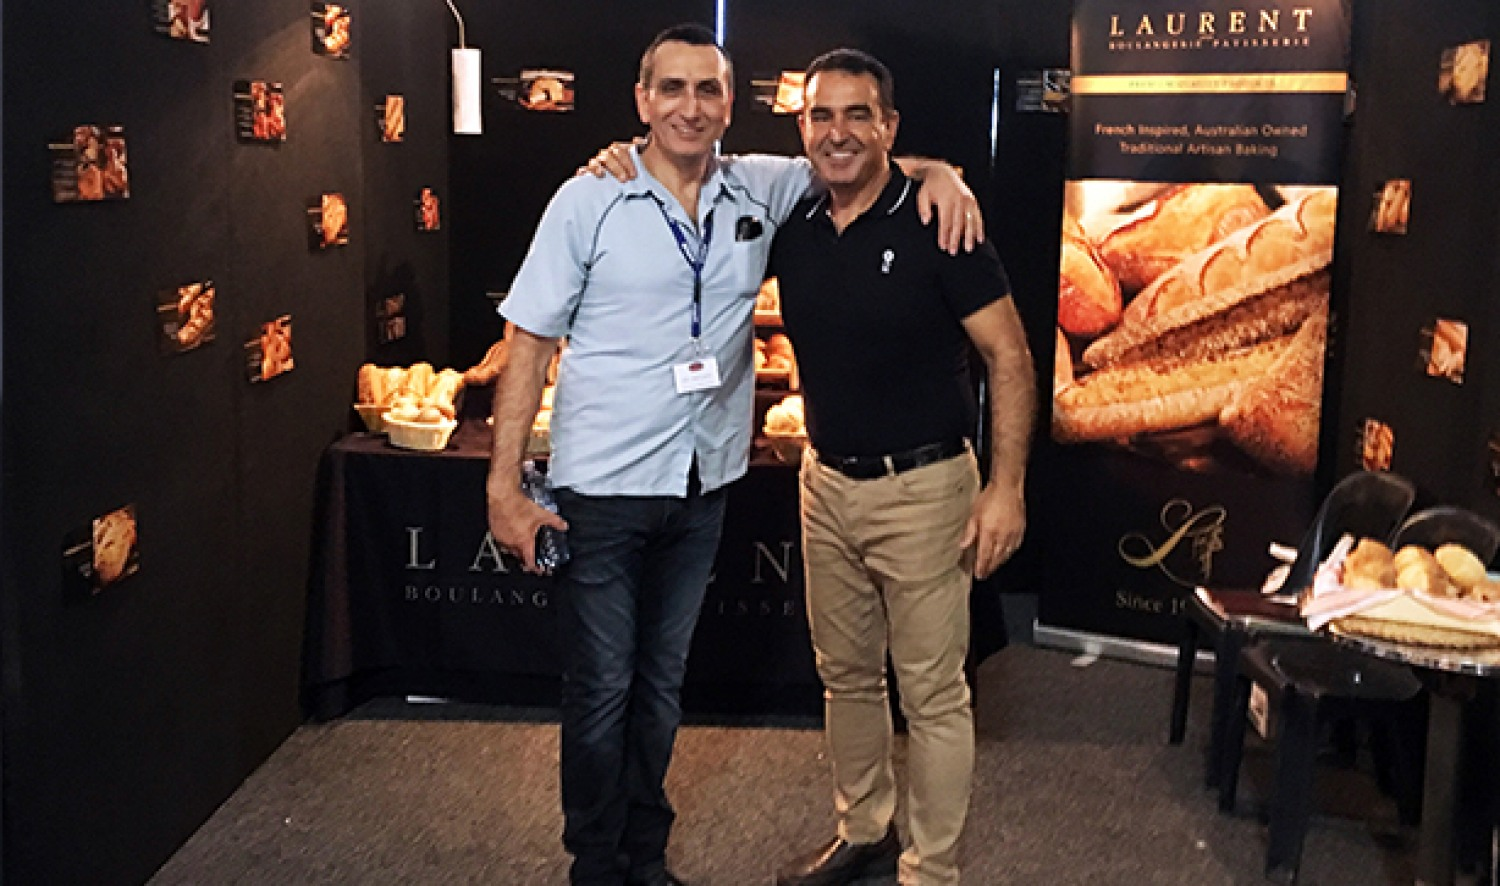 laurent-bakery-darwin-trade-show